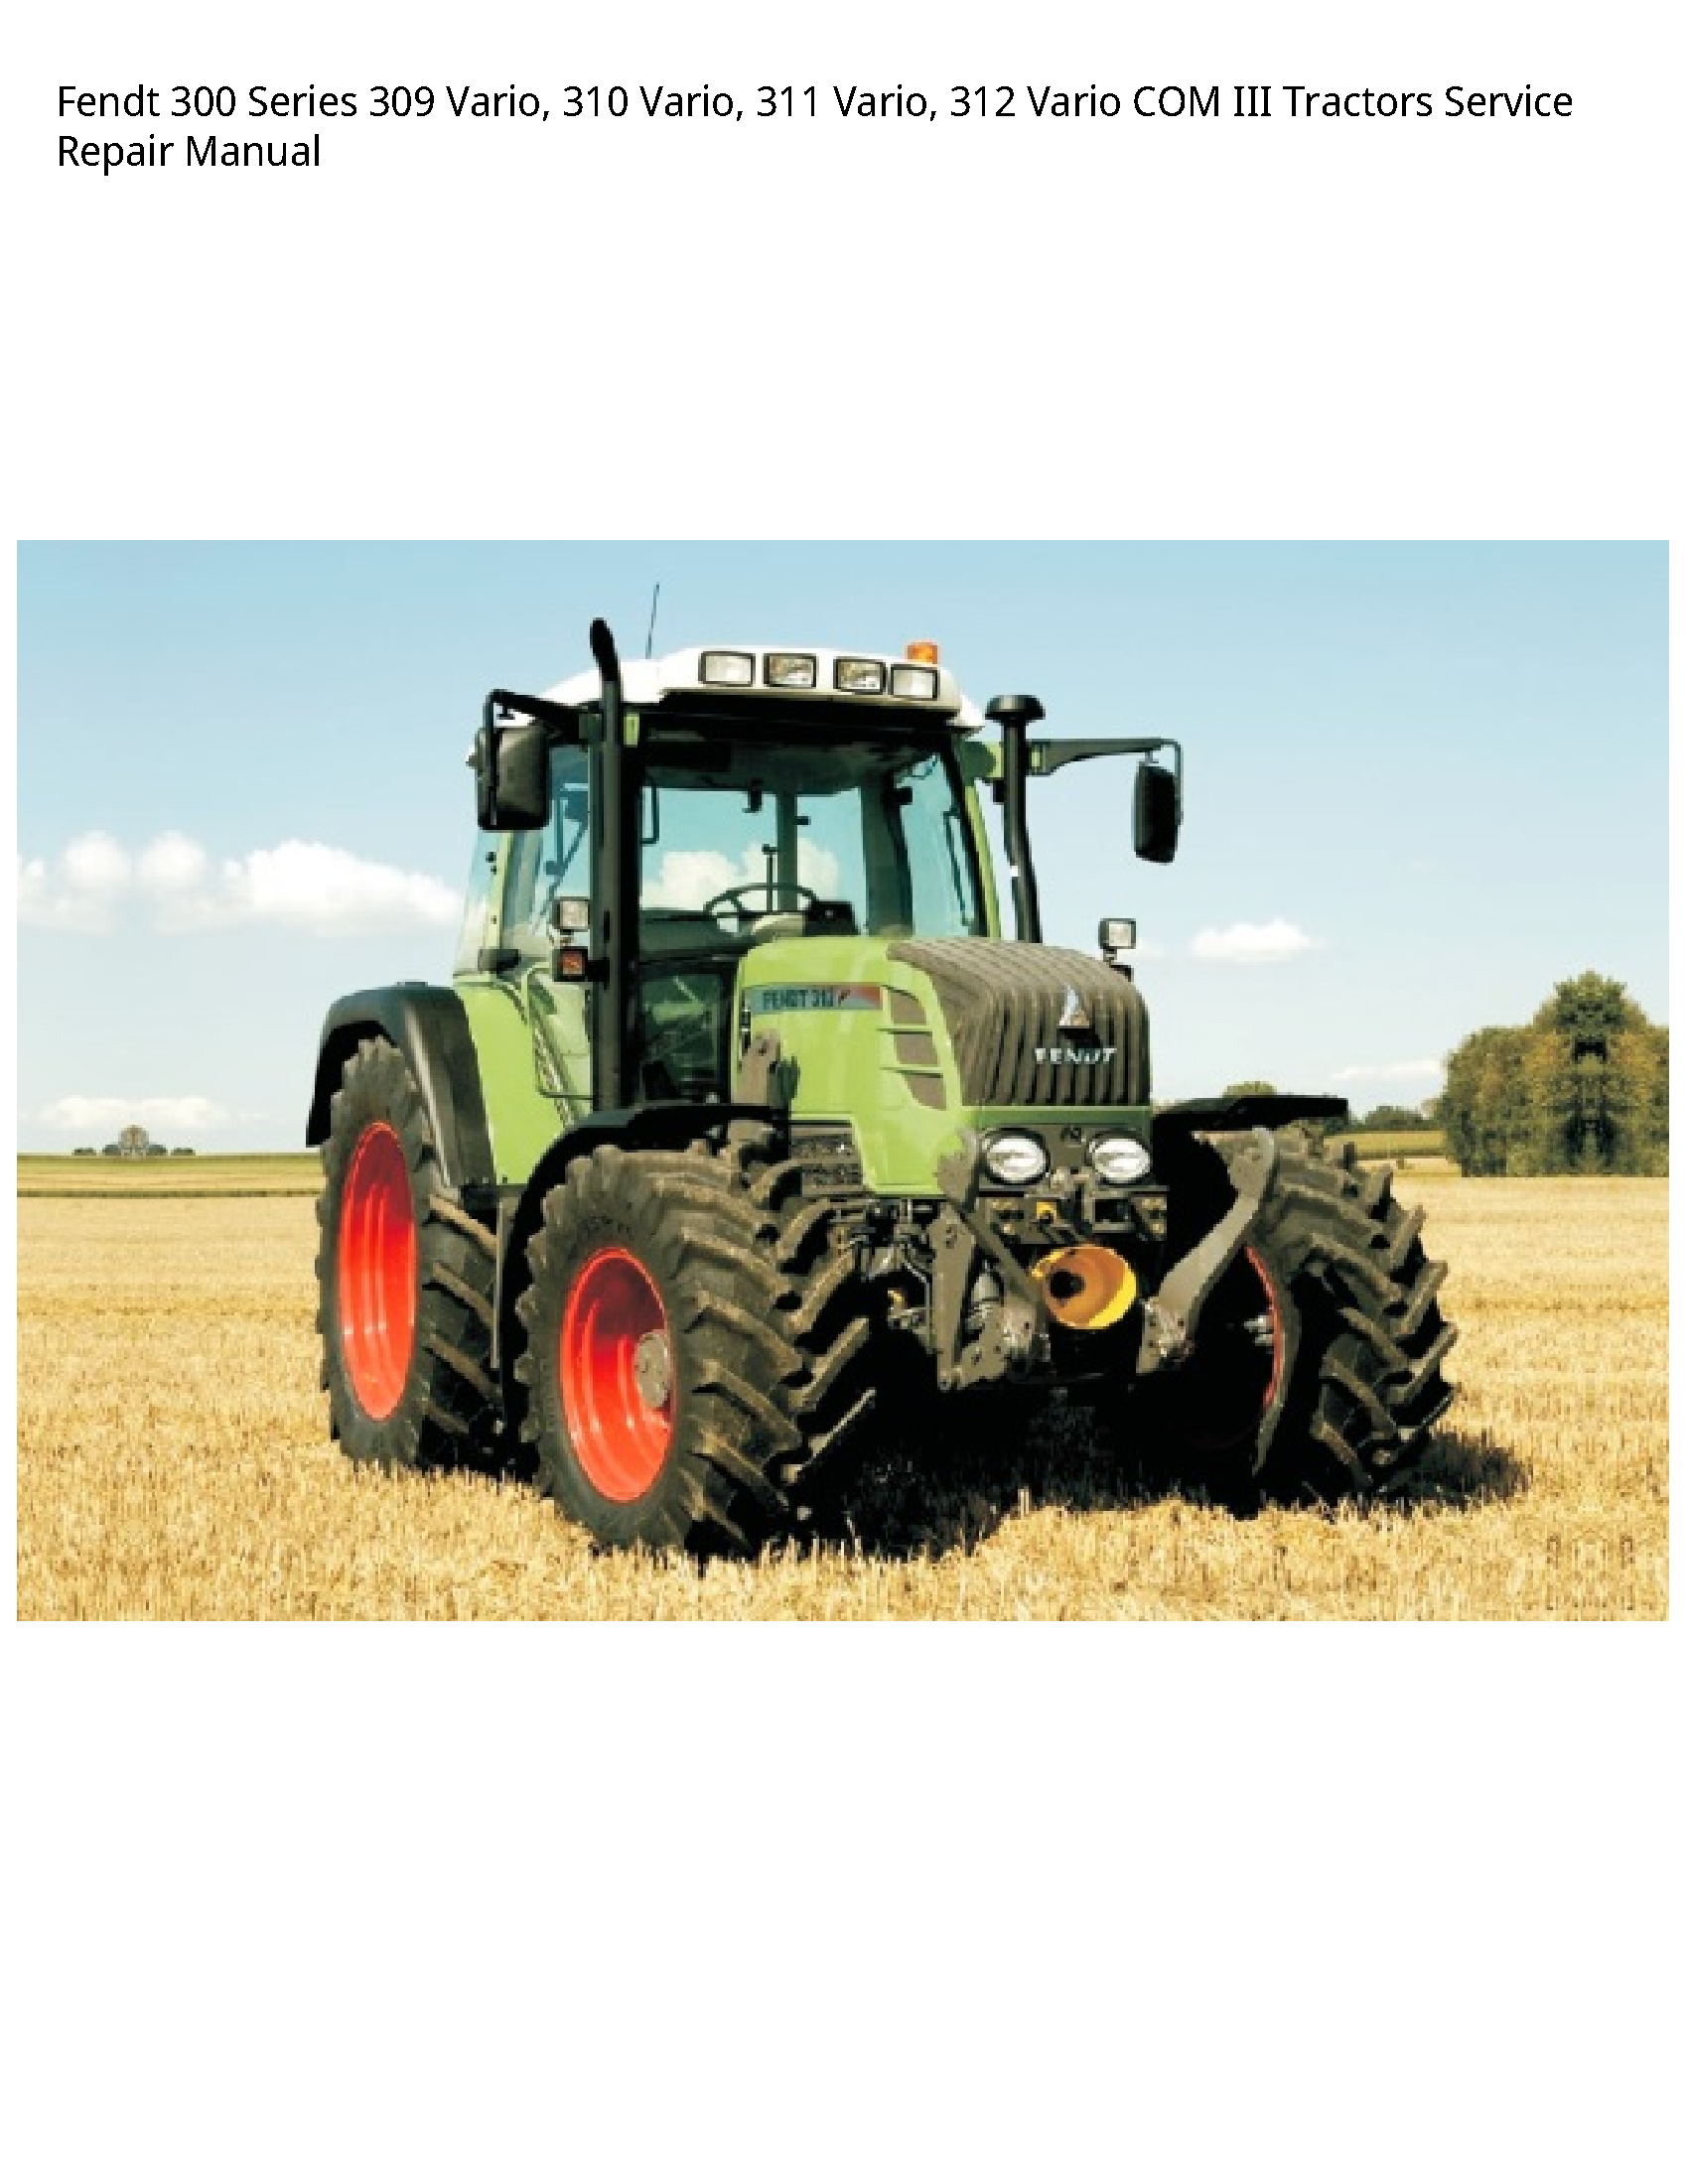 Fendt 300 Series Vario manual